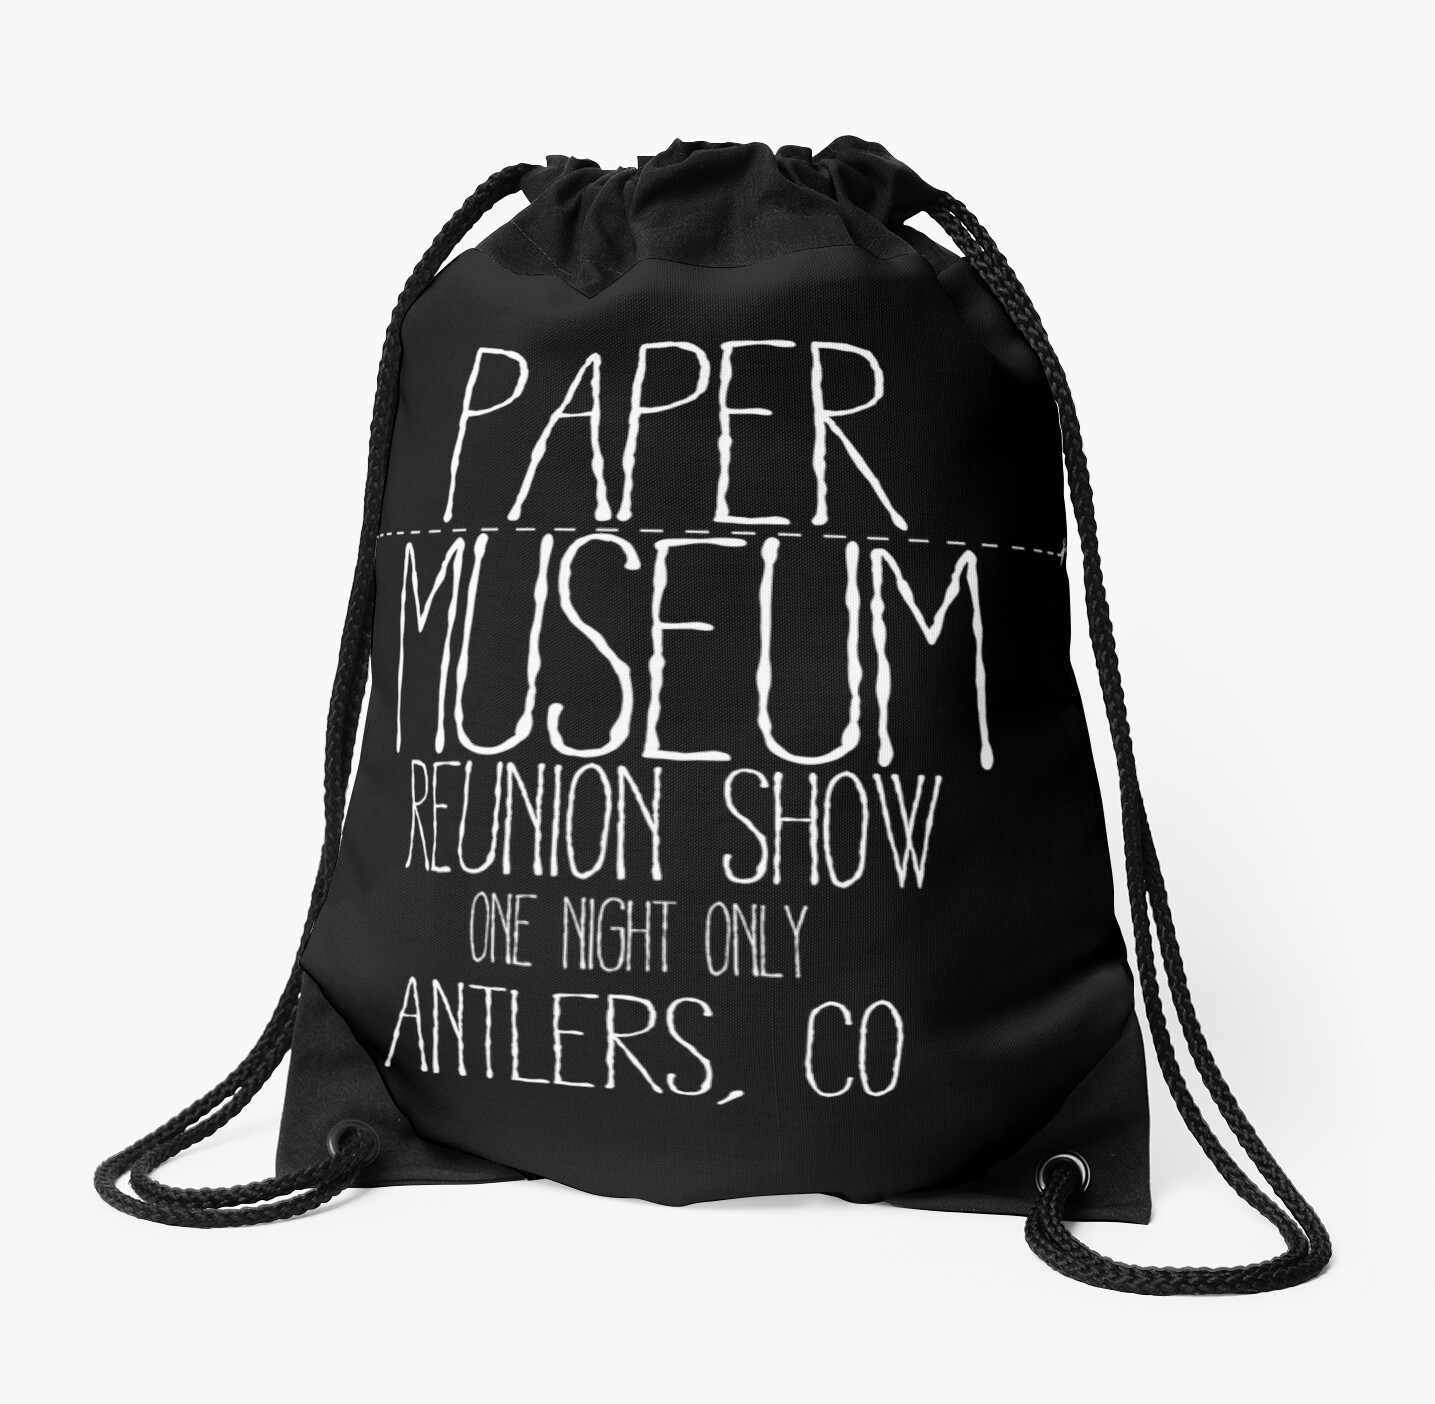 Paper Museum Exclusive Reunion Merchandise by Marnie Silverman